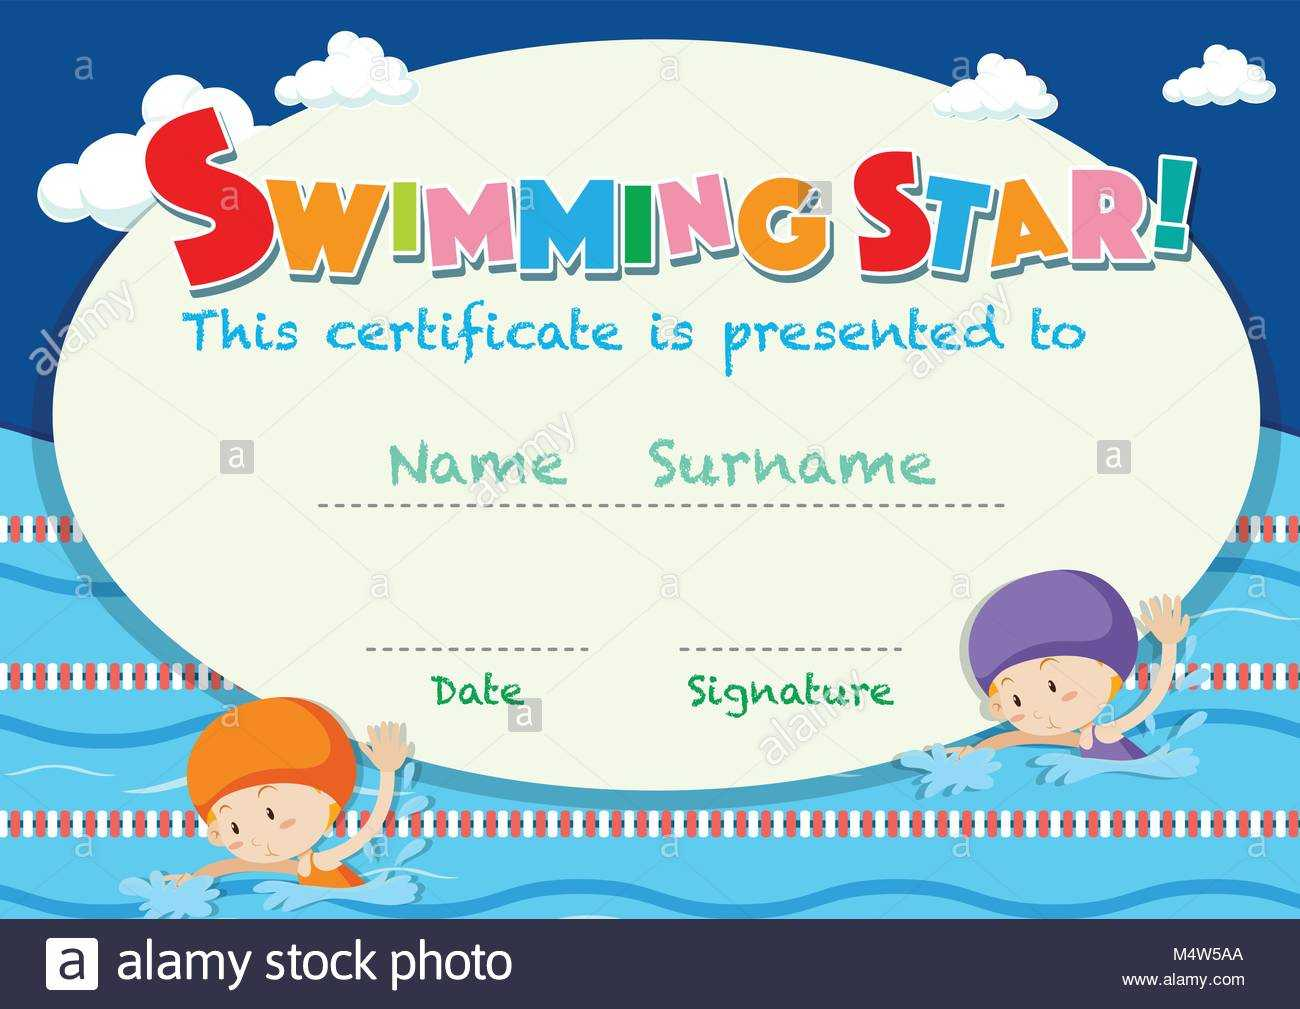 Swimming Certificate Stock Photos & Swimming Certificate Within Free Swimming Certificate Templates